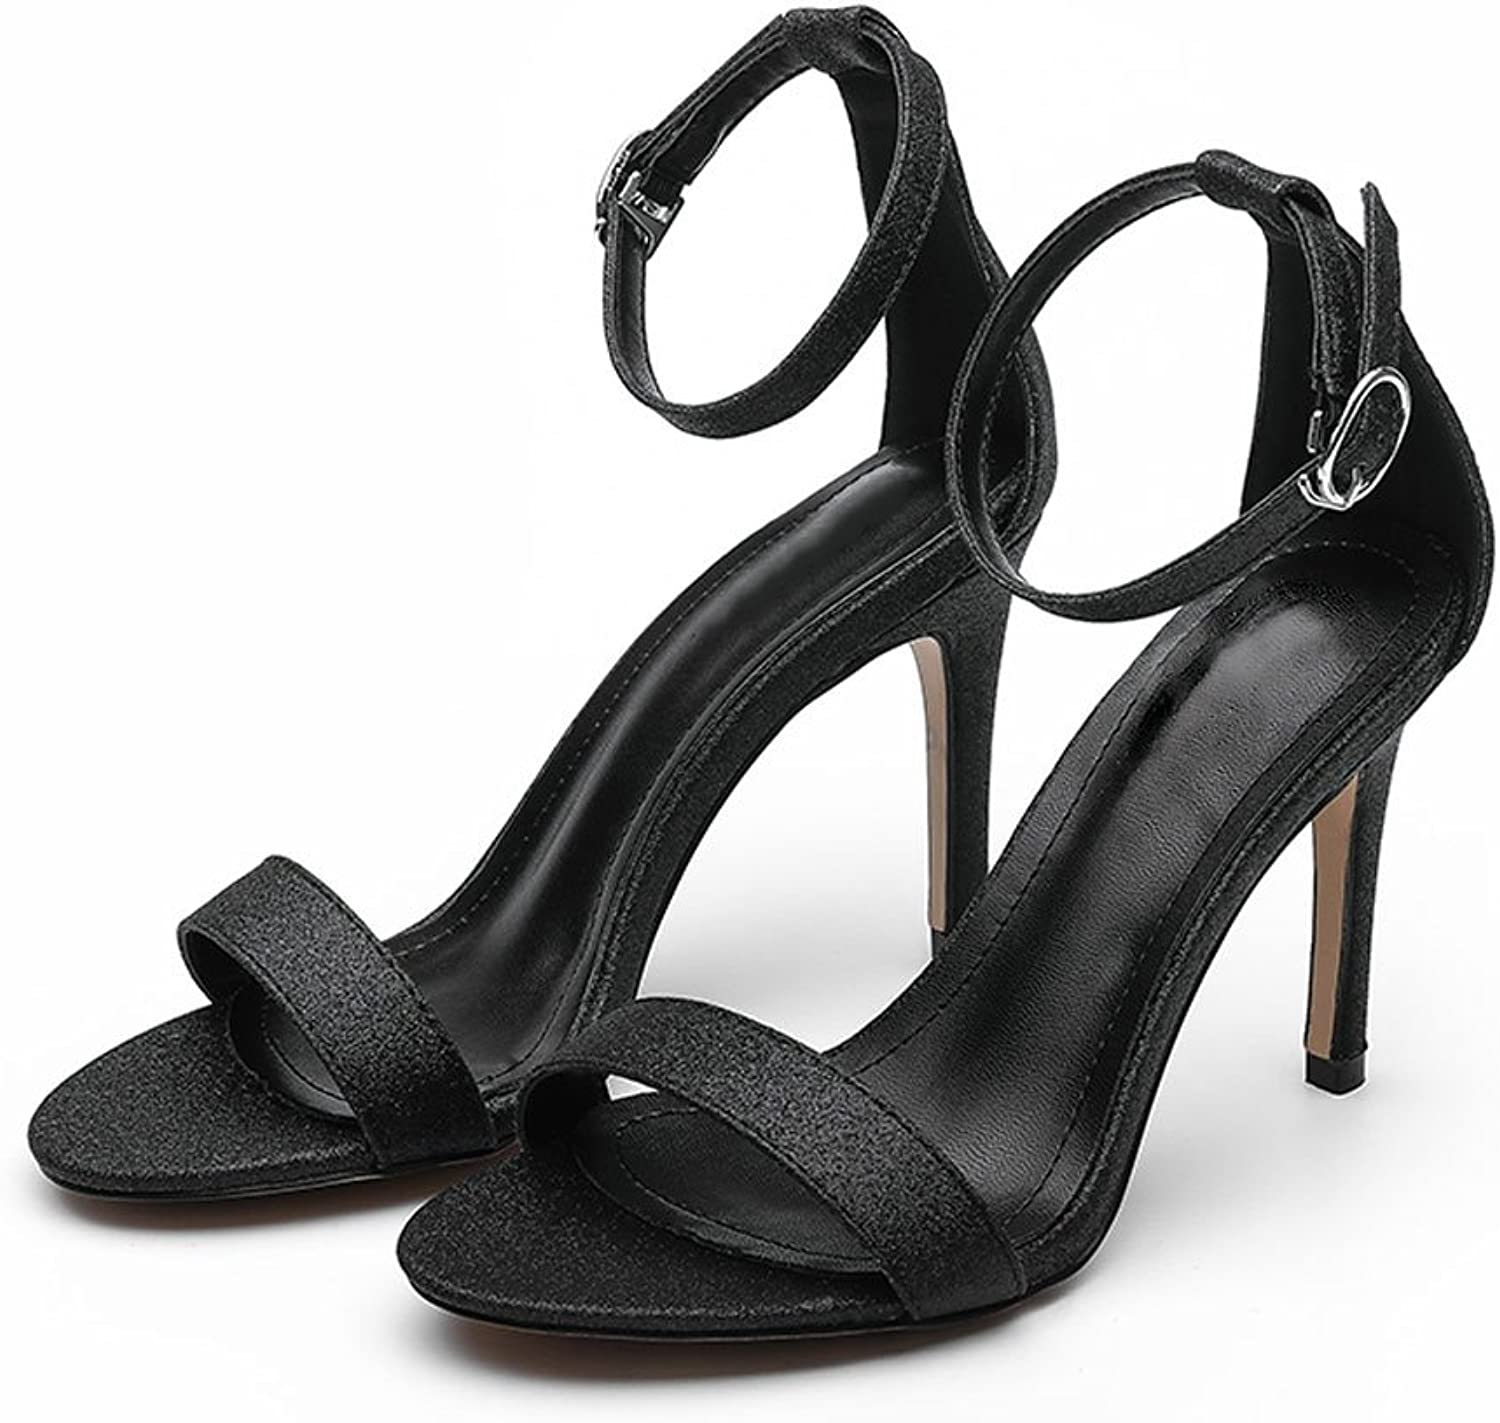 LIUXUEPING A Word with High-Heeled Sandals Female Summer 2017 New Fine with Sexy Open-Toe Hollow Simple Black Leather High Heels (color   Silver8cm, Size   39)